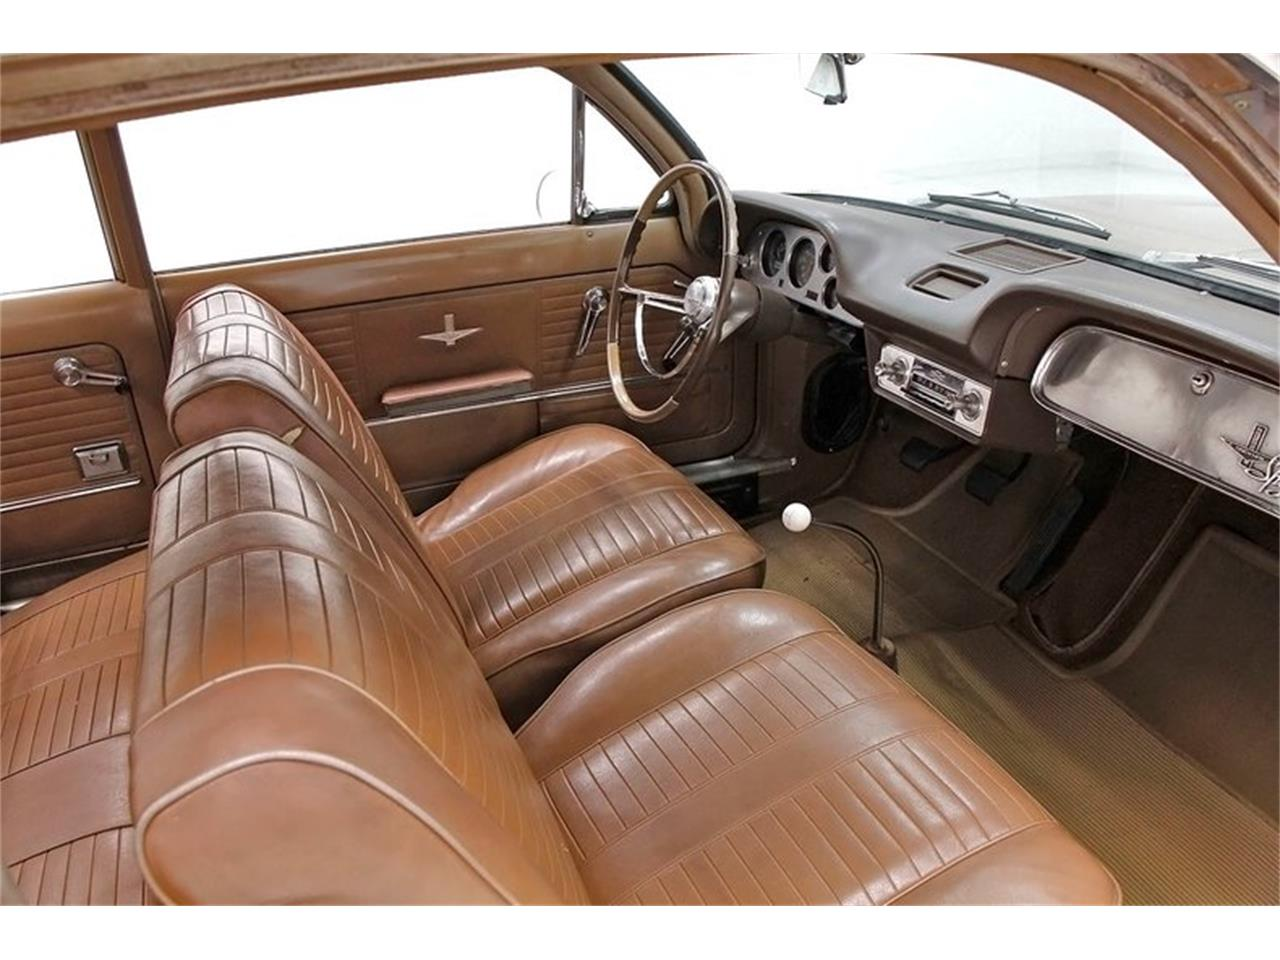 1964 Chevrolet Corvair for sale in Morgantown, PA – photo 27